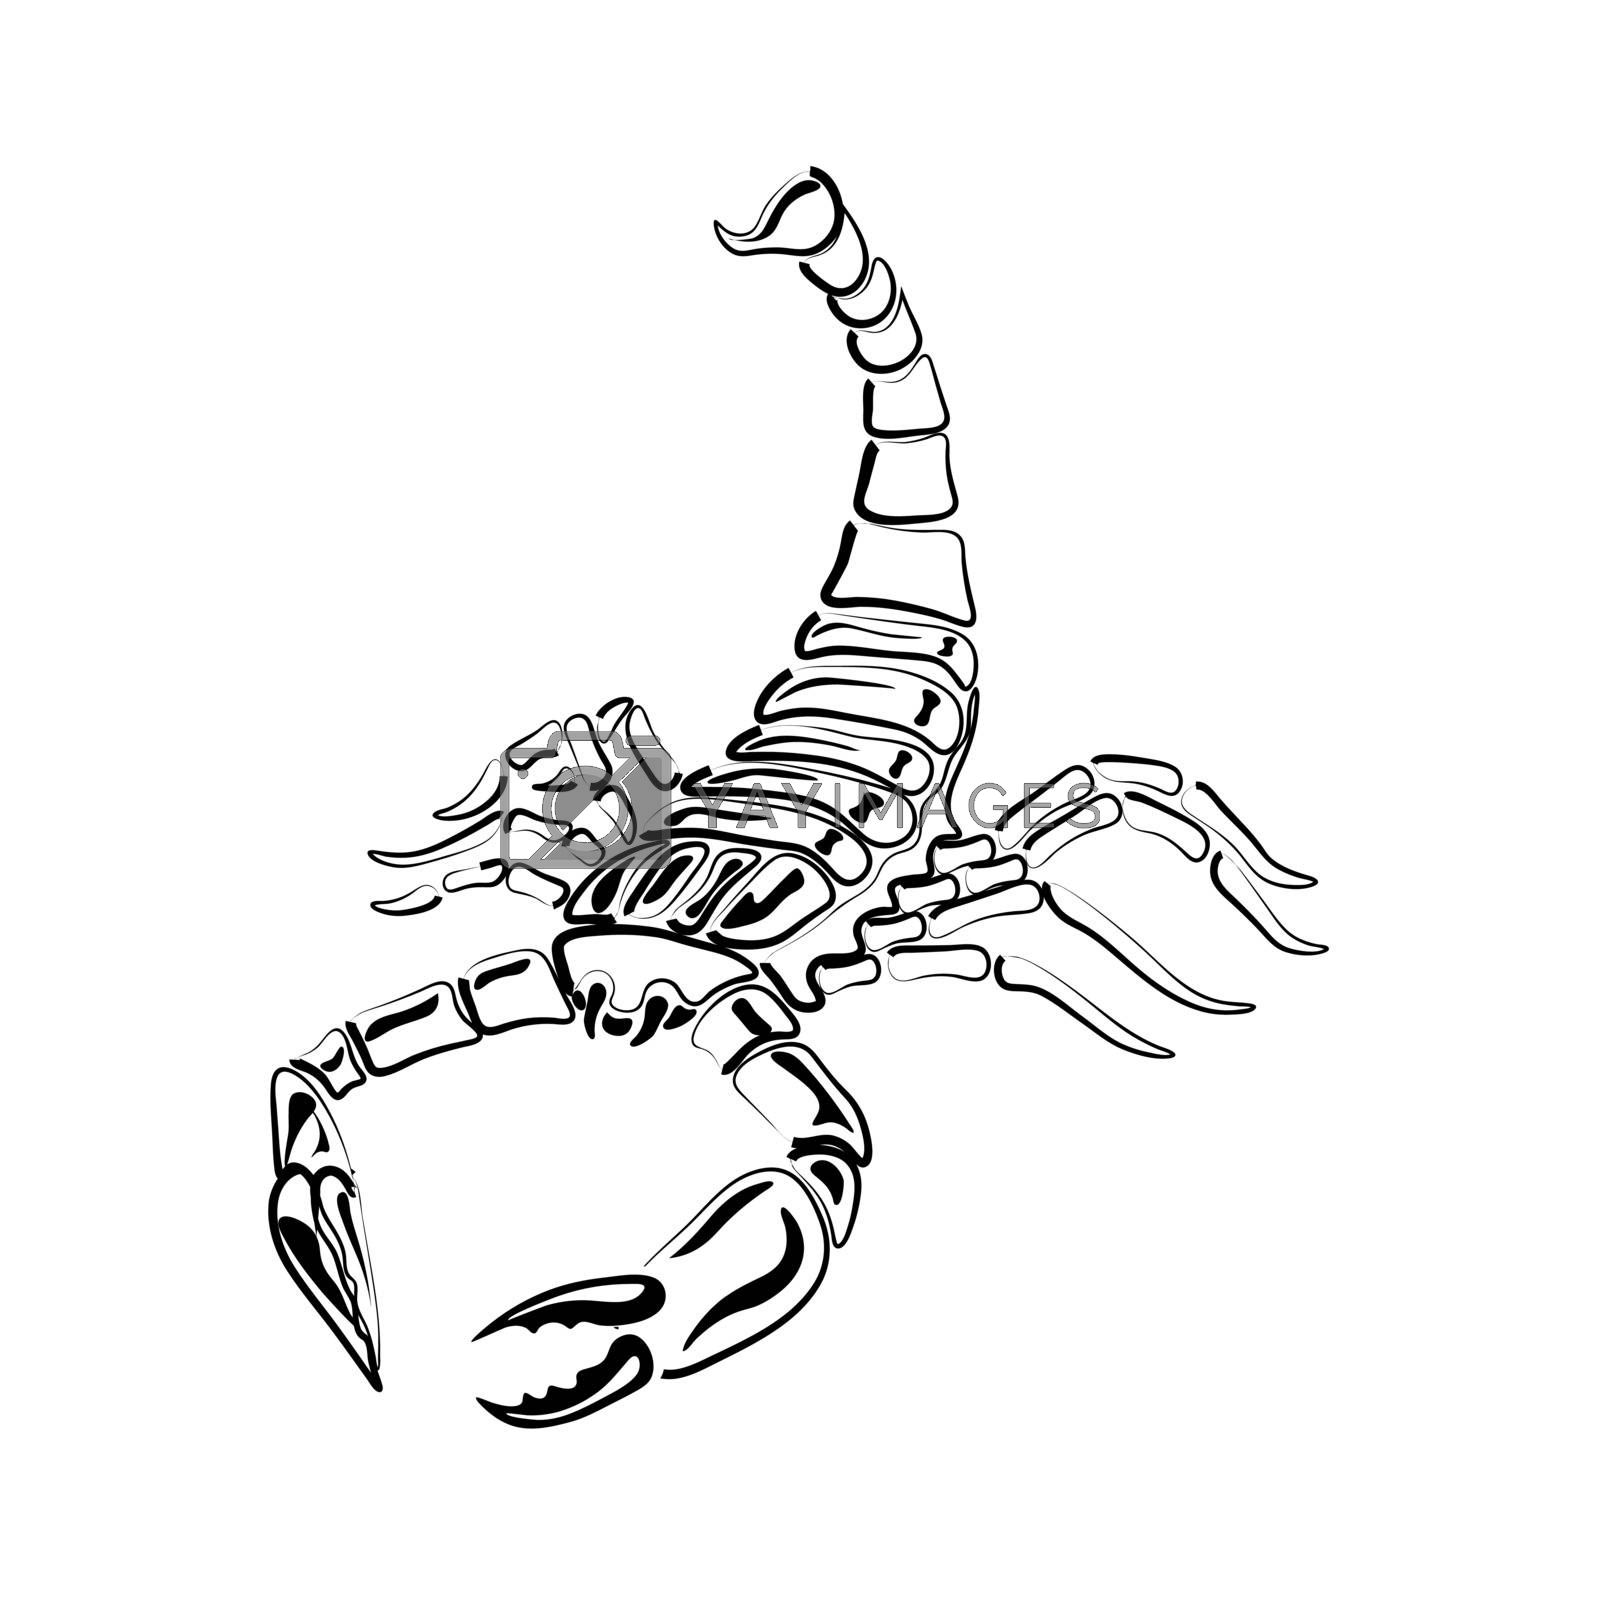 Black and white Scorpion for tattoos, zodiac sign by lilystudio